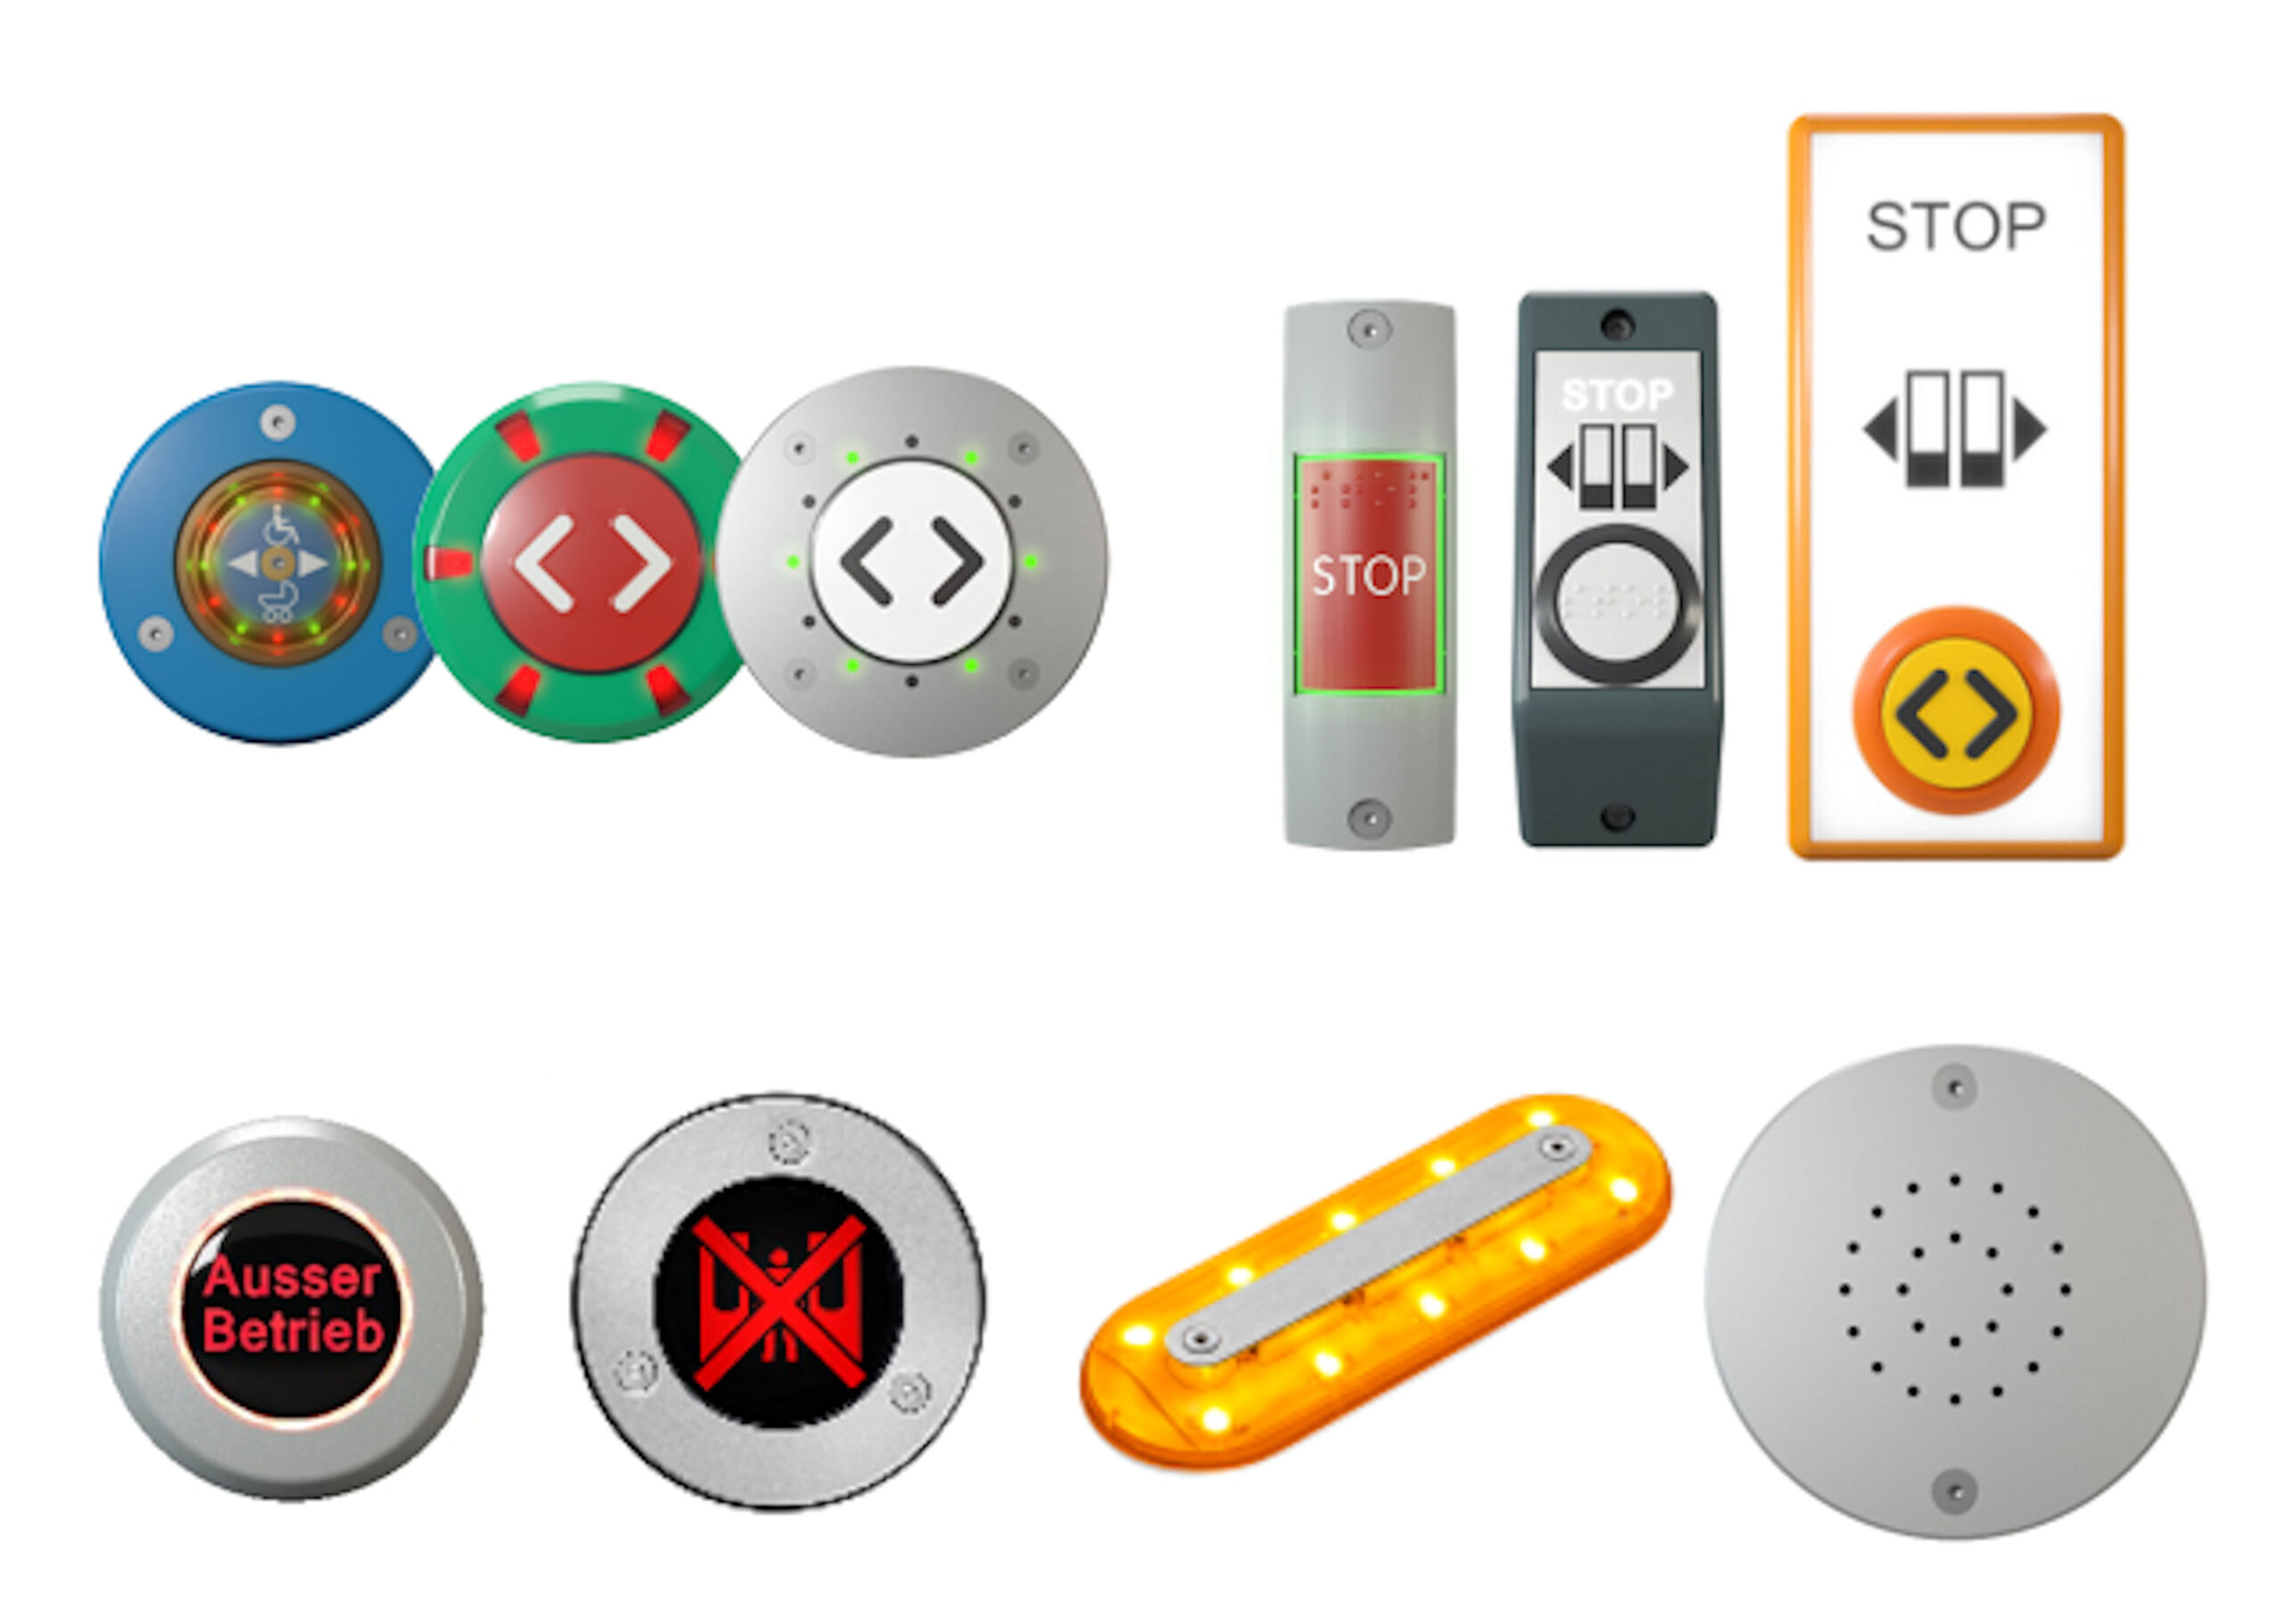 Customized Push-Buttons, Sounders and Signal Lights